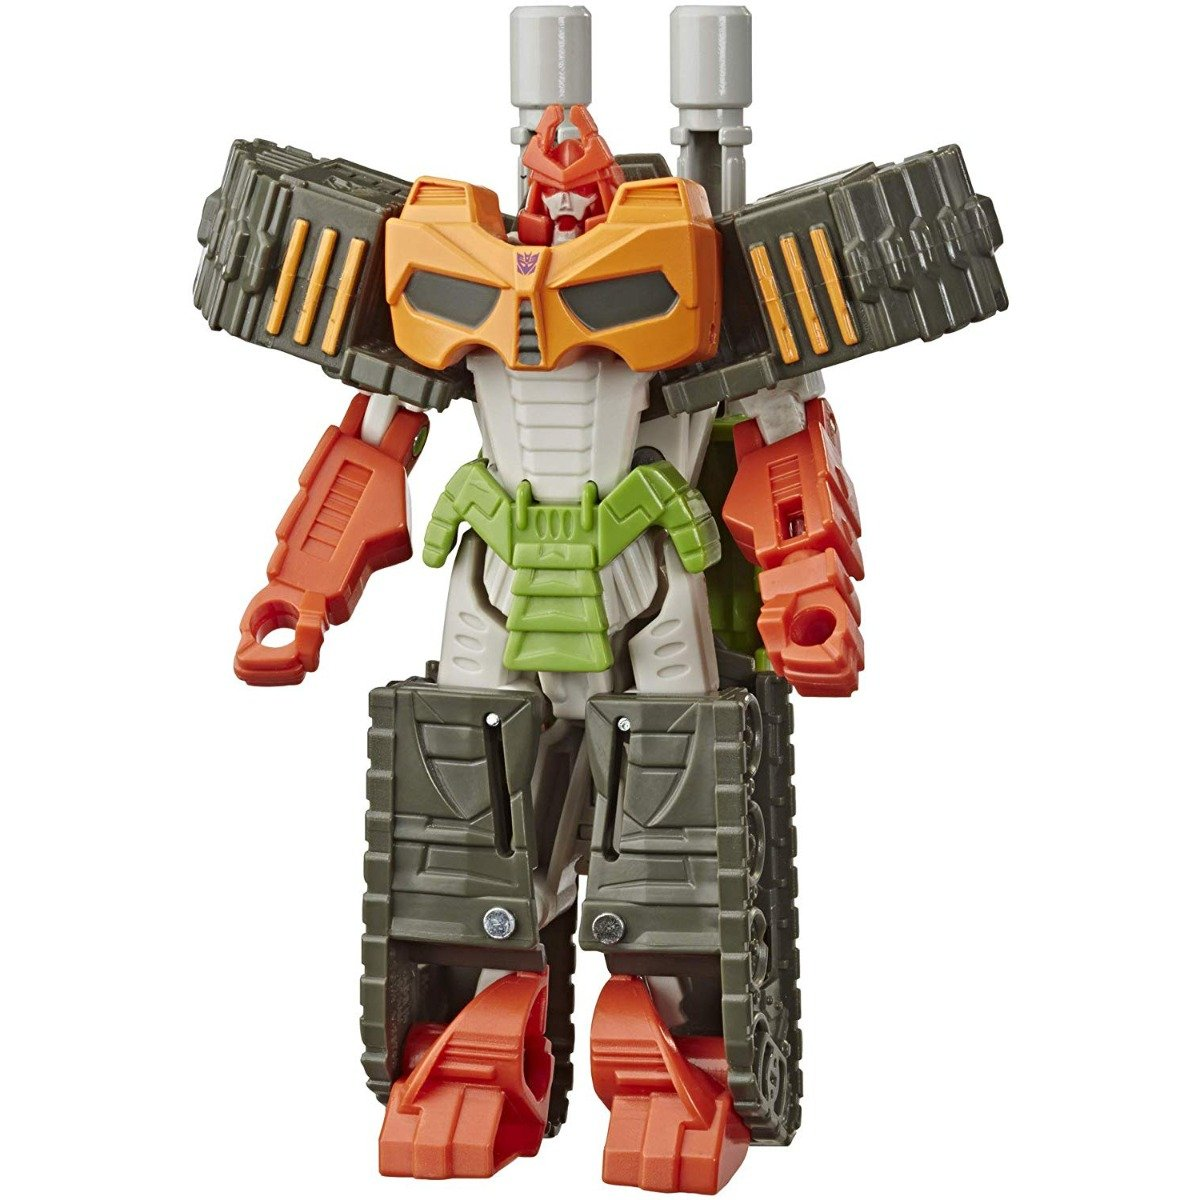 Figurina Transformers Cyberverse, Bludgeon E7071